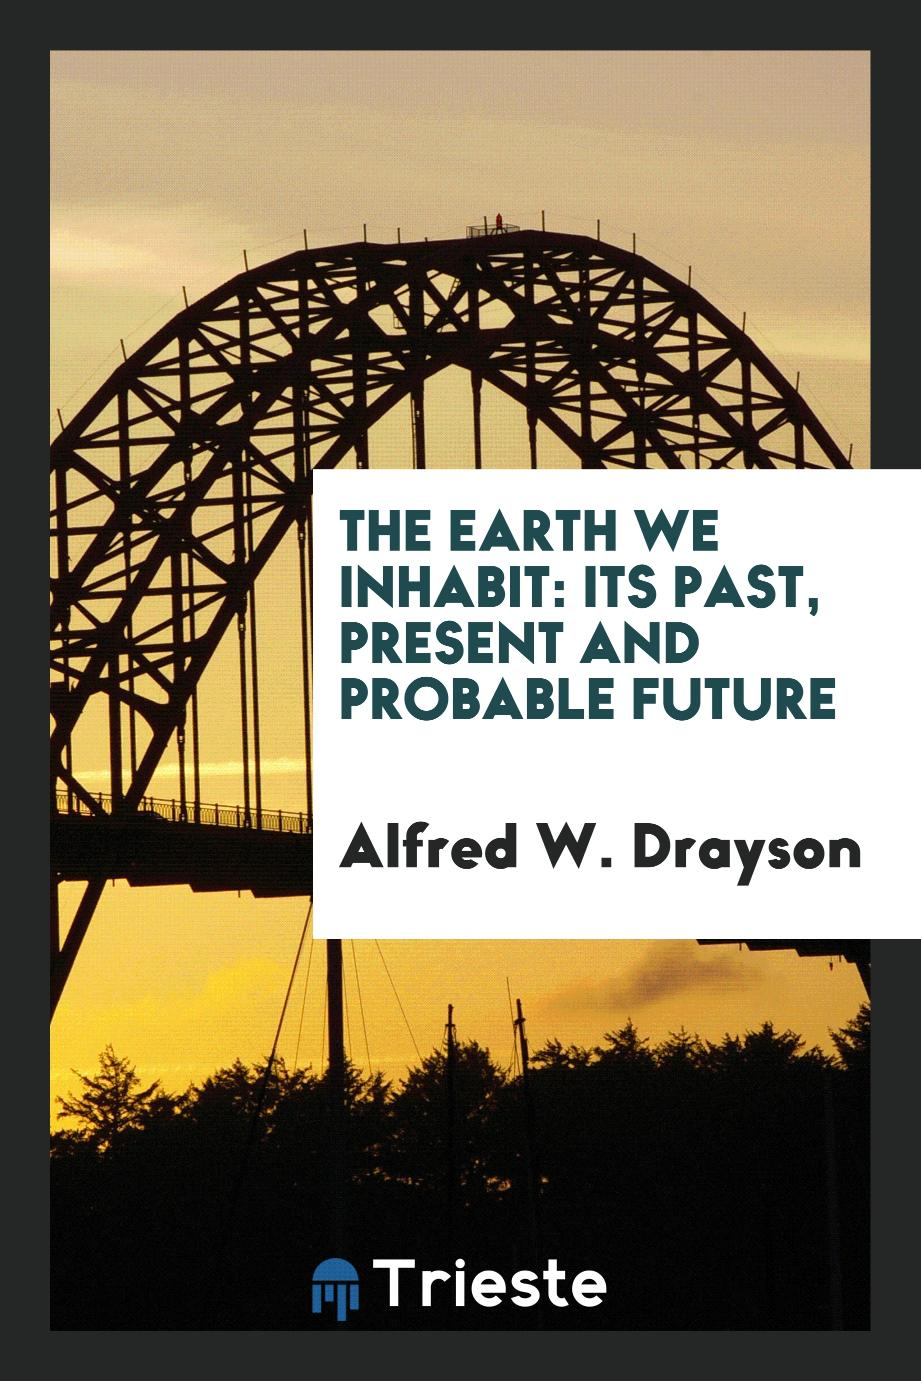 The Earth We Inhabit: Its Past, Present and Probable Future